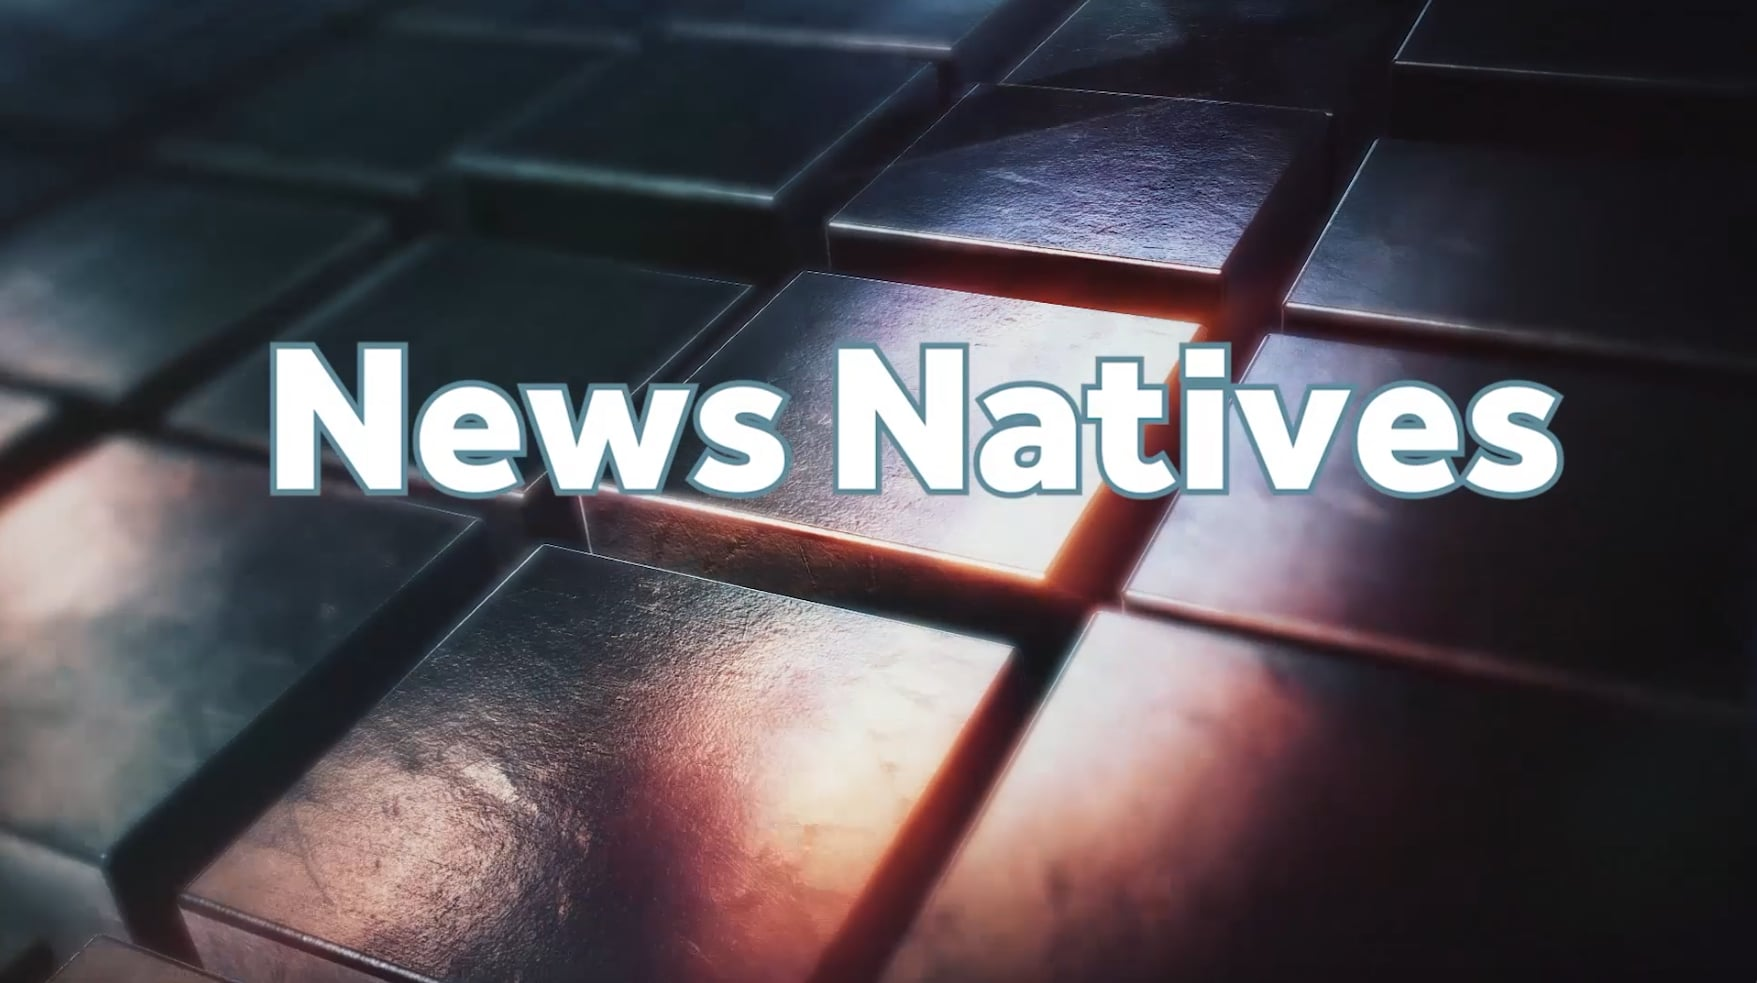 News Natives 5 – Topic: Cuts to University Departments